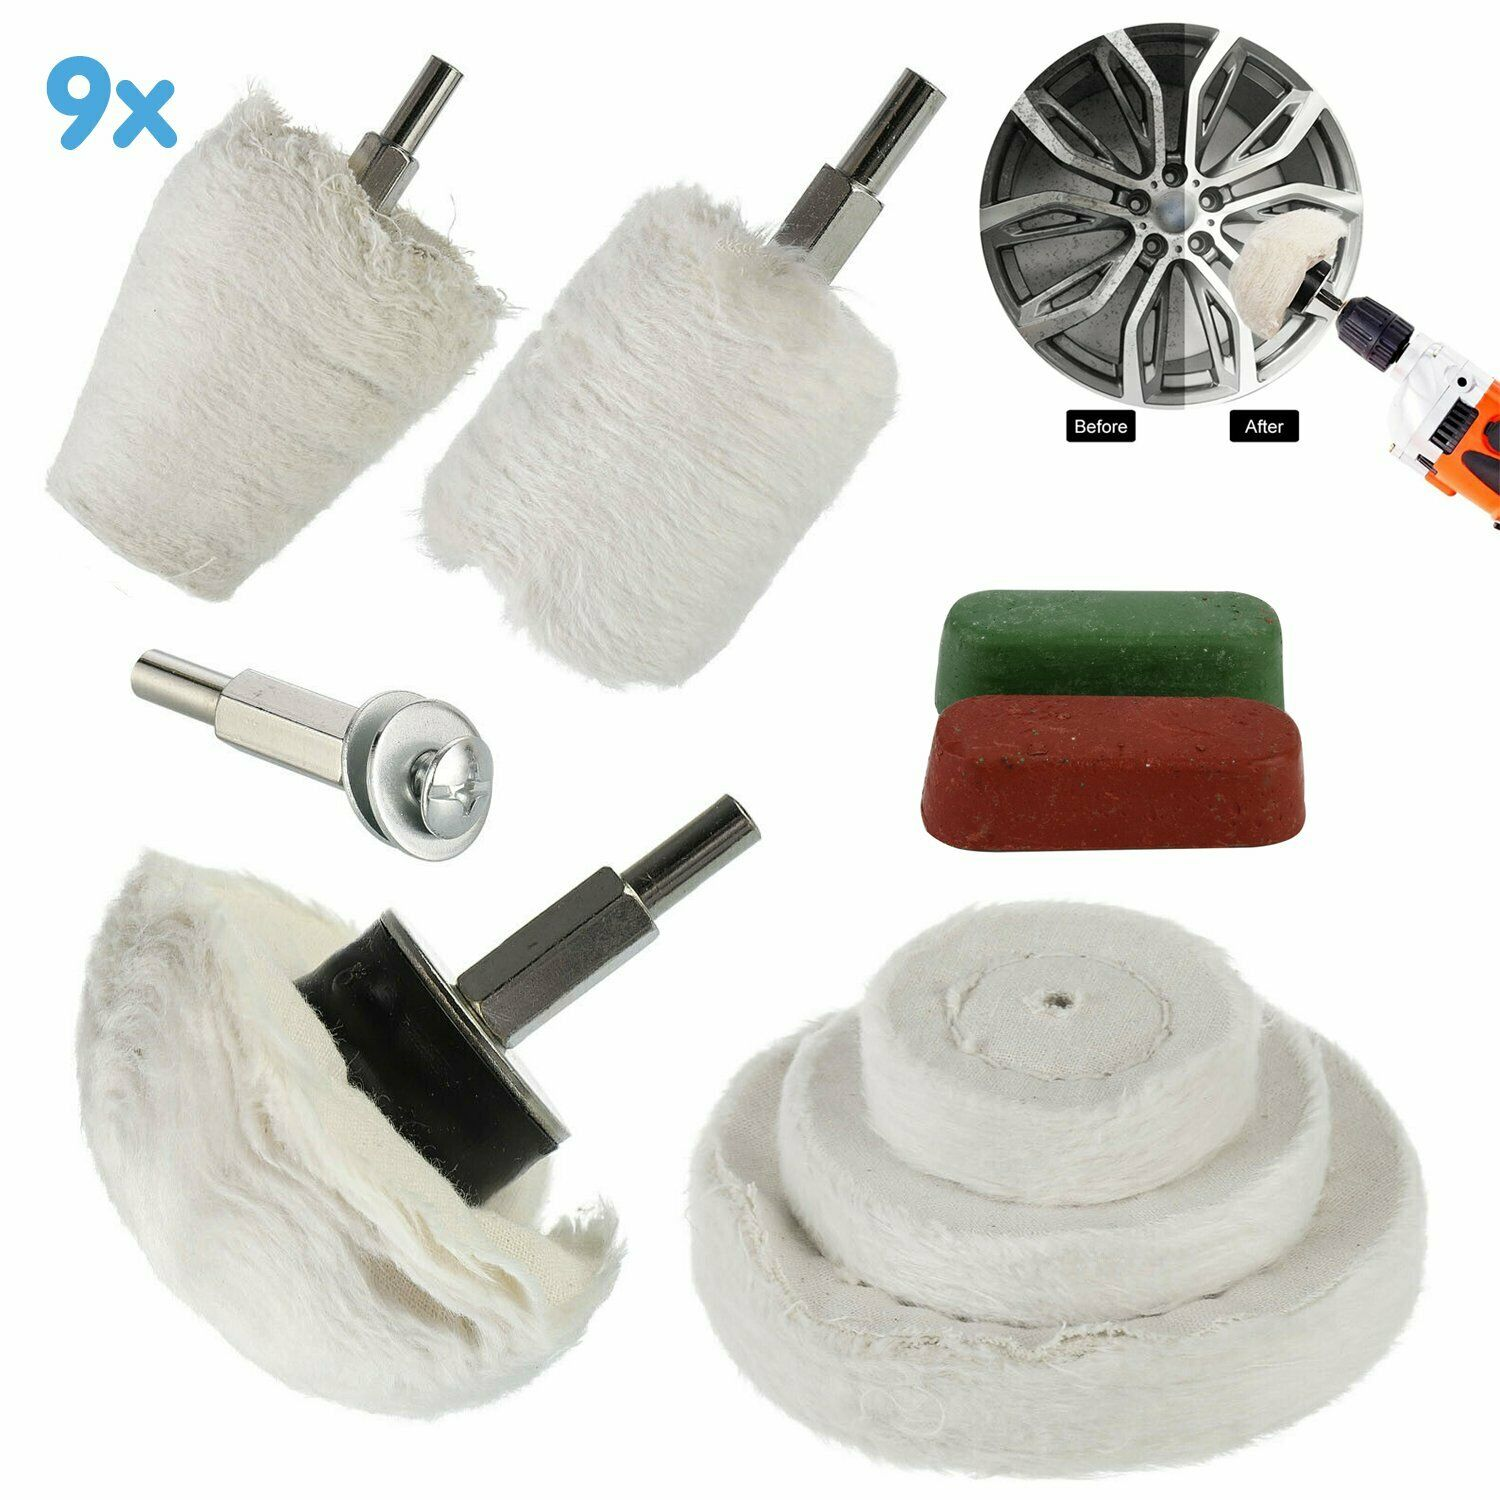 9pcs/set Polishing Set Polishing Heads Polishing Disc Attachment For Drill Bagged